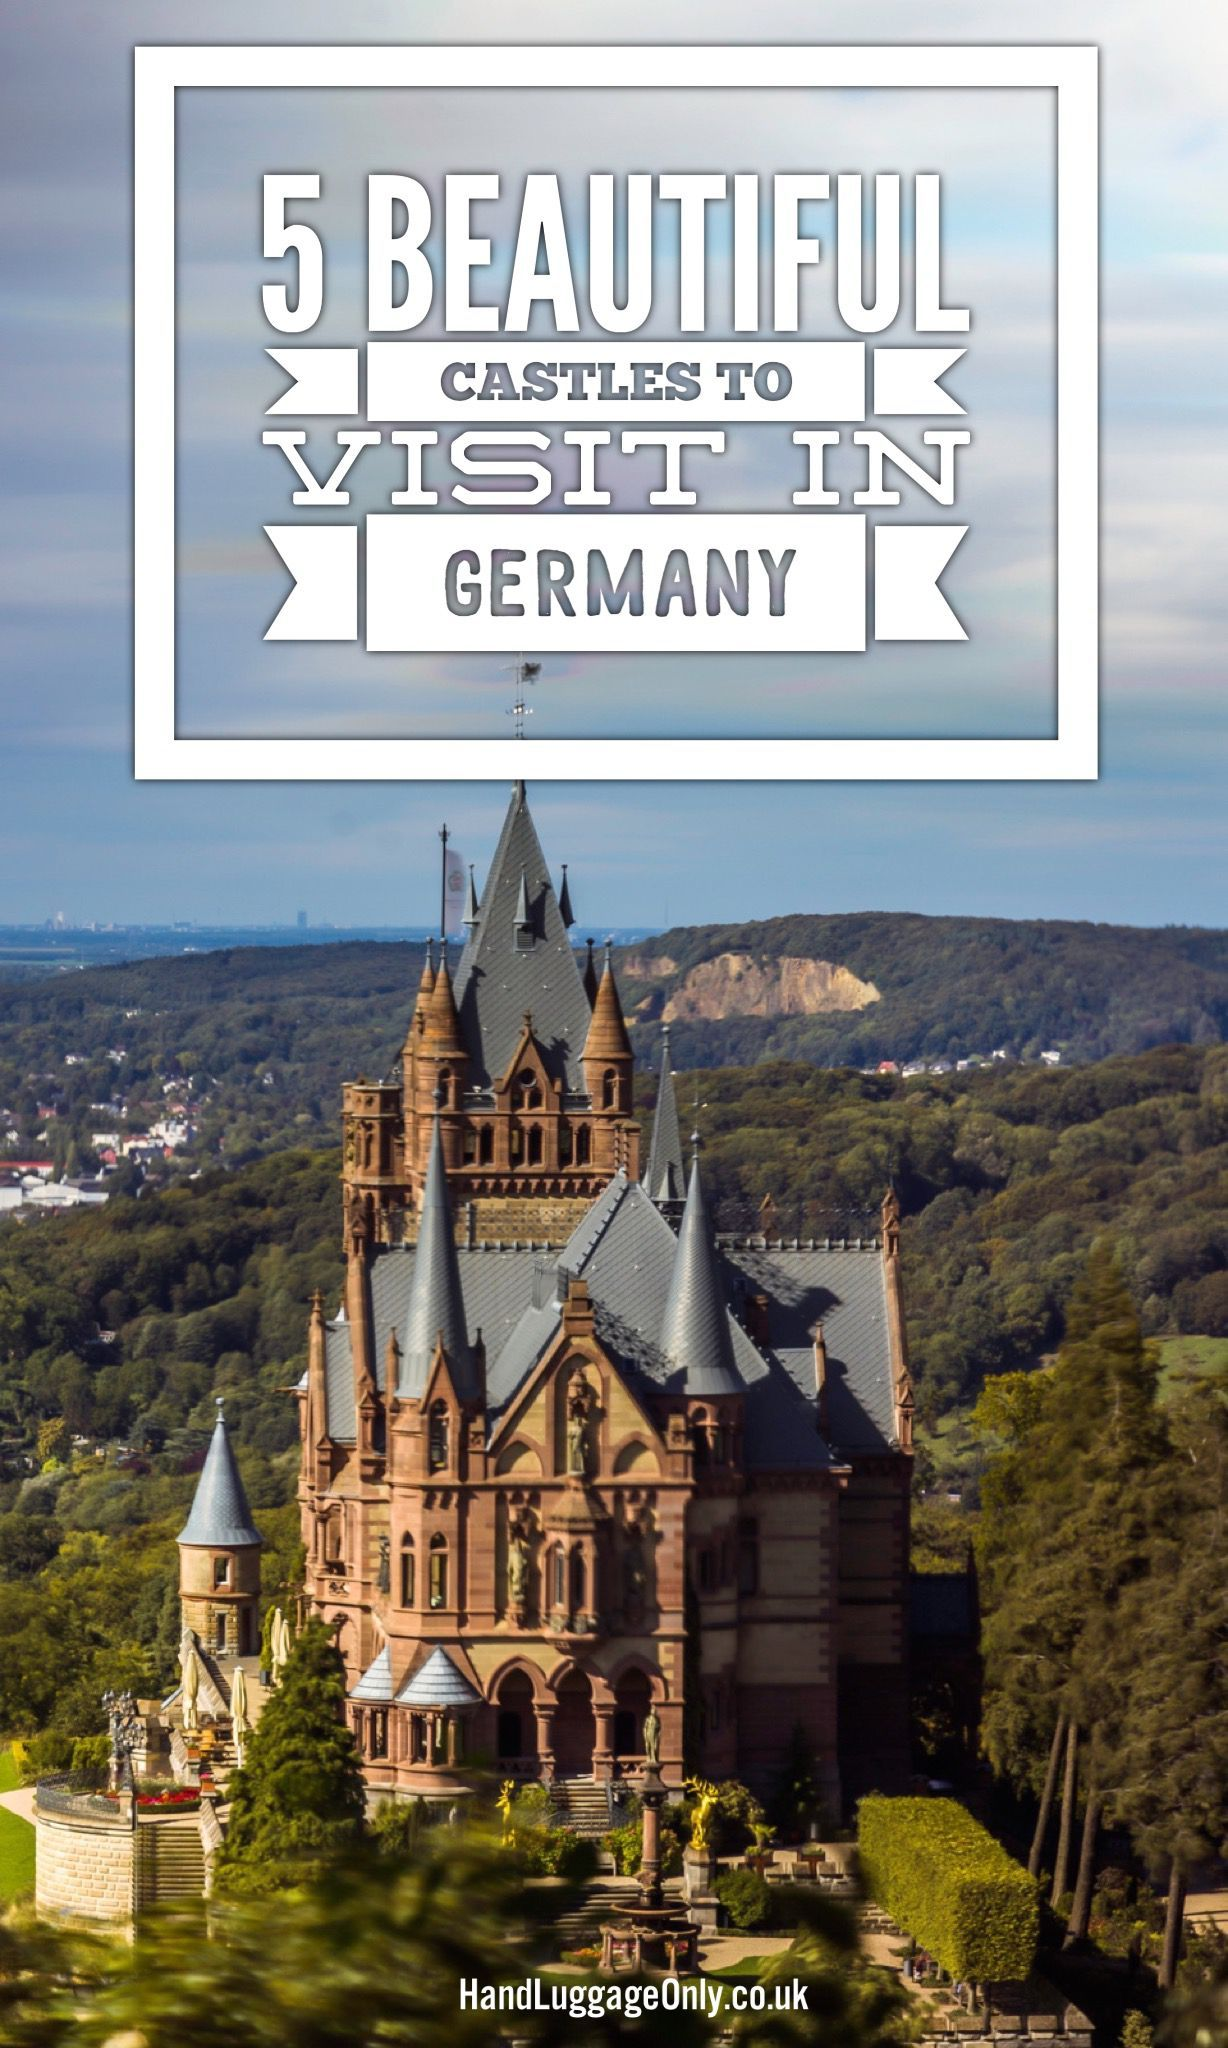 5 Amazing Castles In Germany You Have To Visit In The New